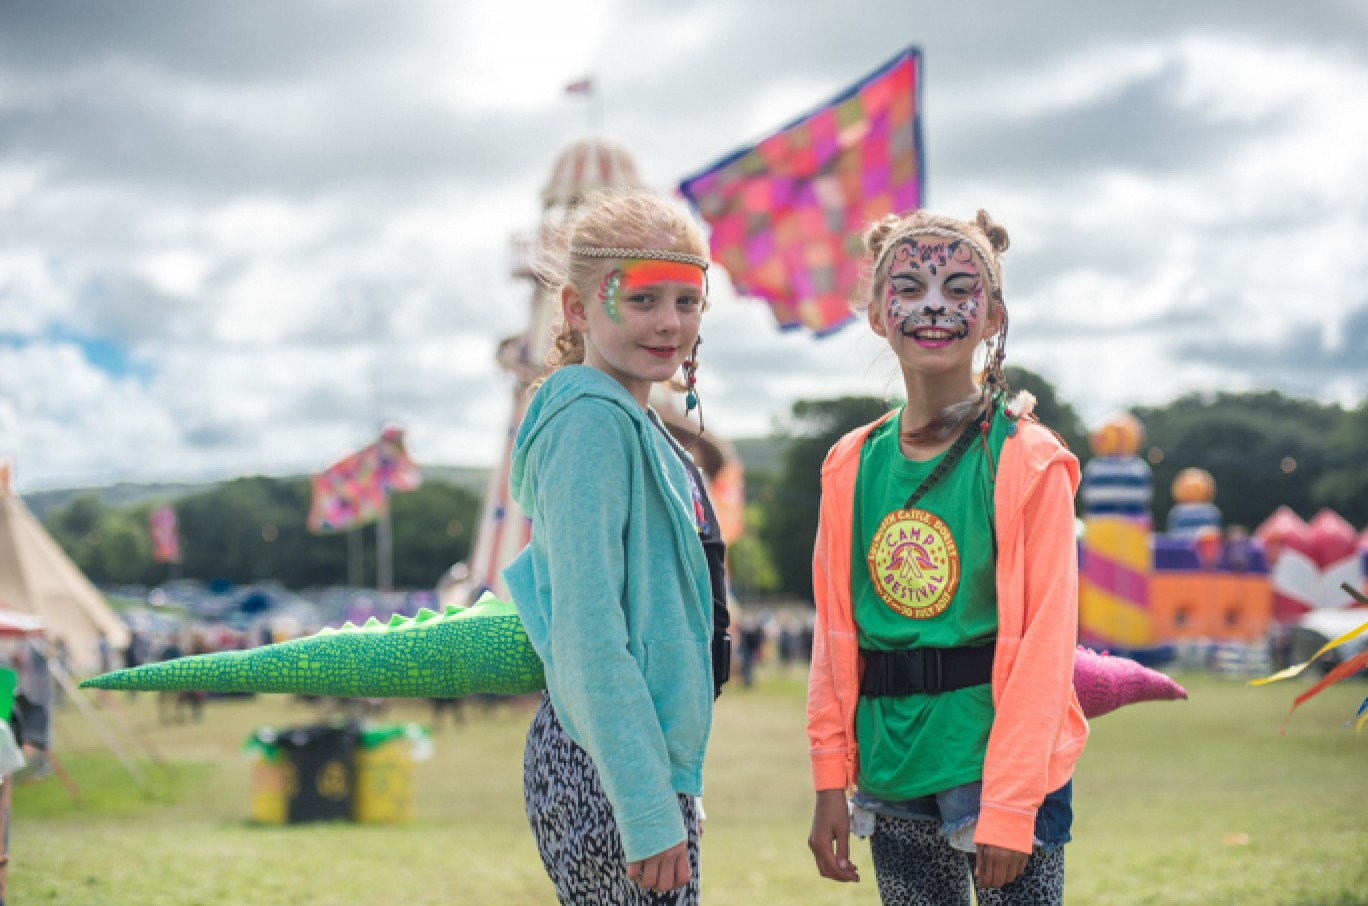 6_82-camp-bestival-2017-kids-field-cl-dsc_24261501585052